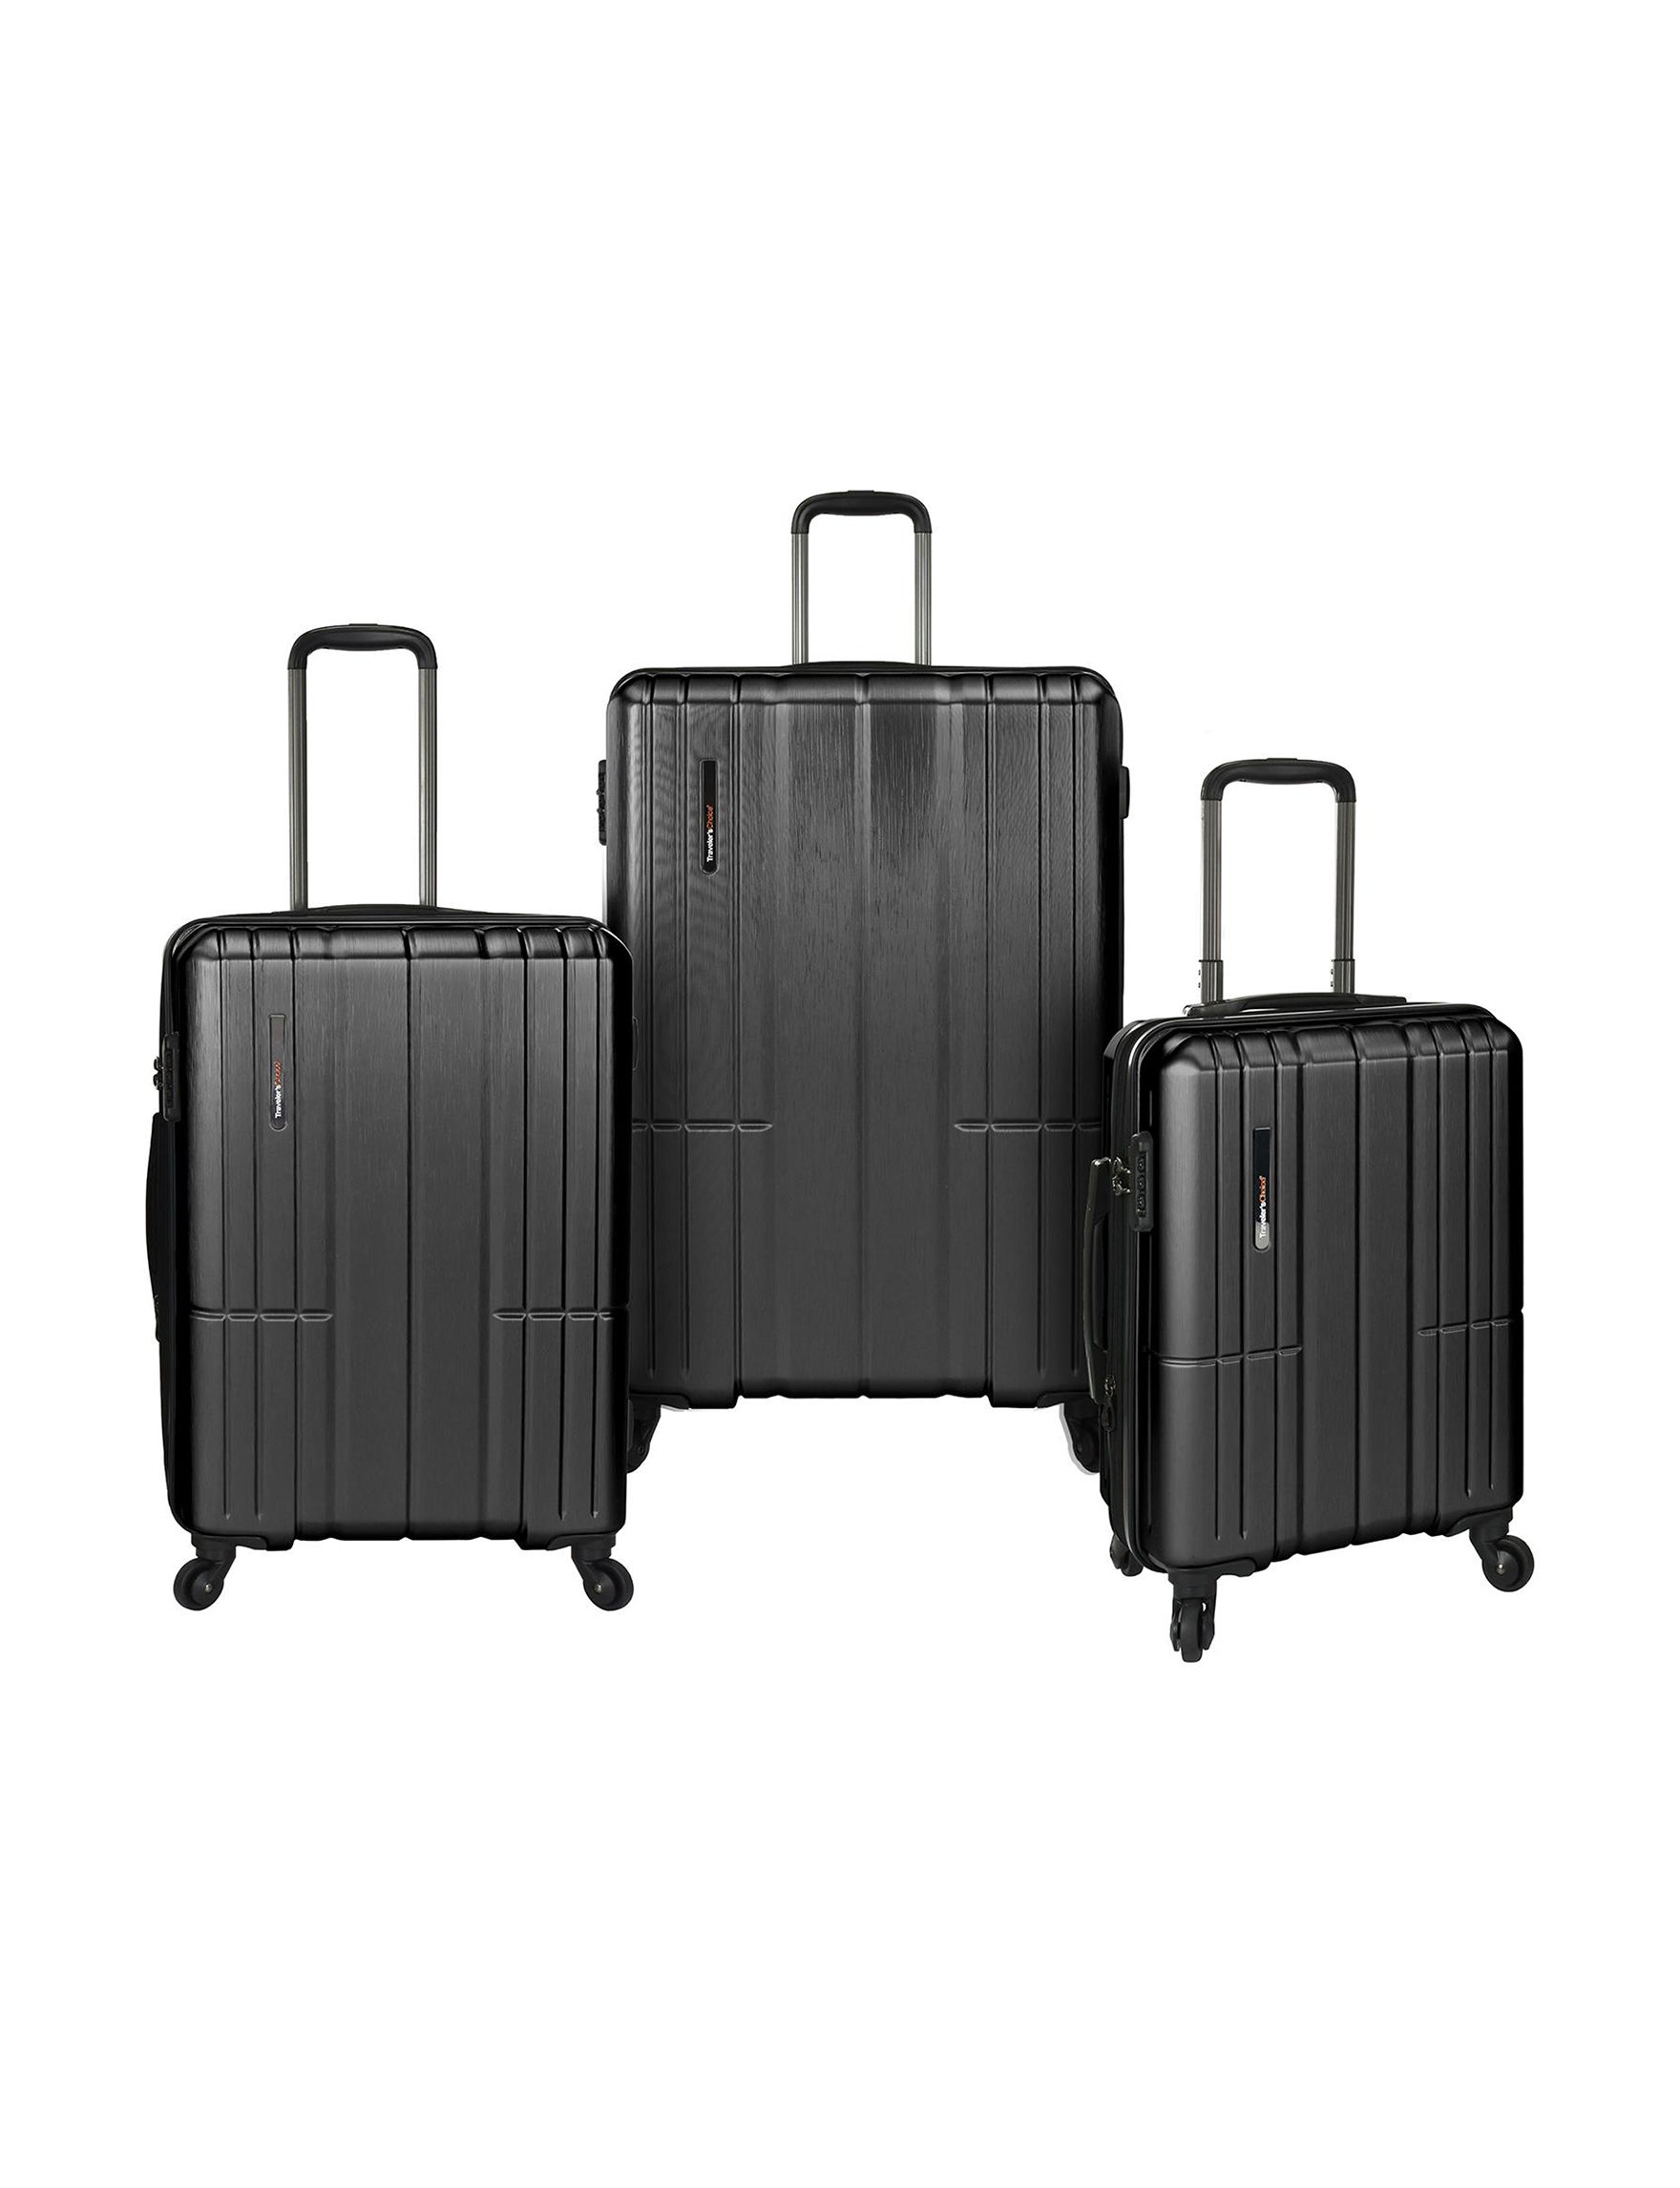 Travelers Choice Grey Luggage Sets Upright Spinners